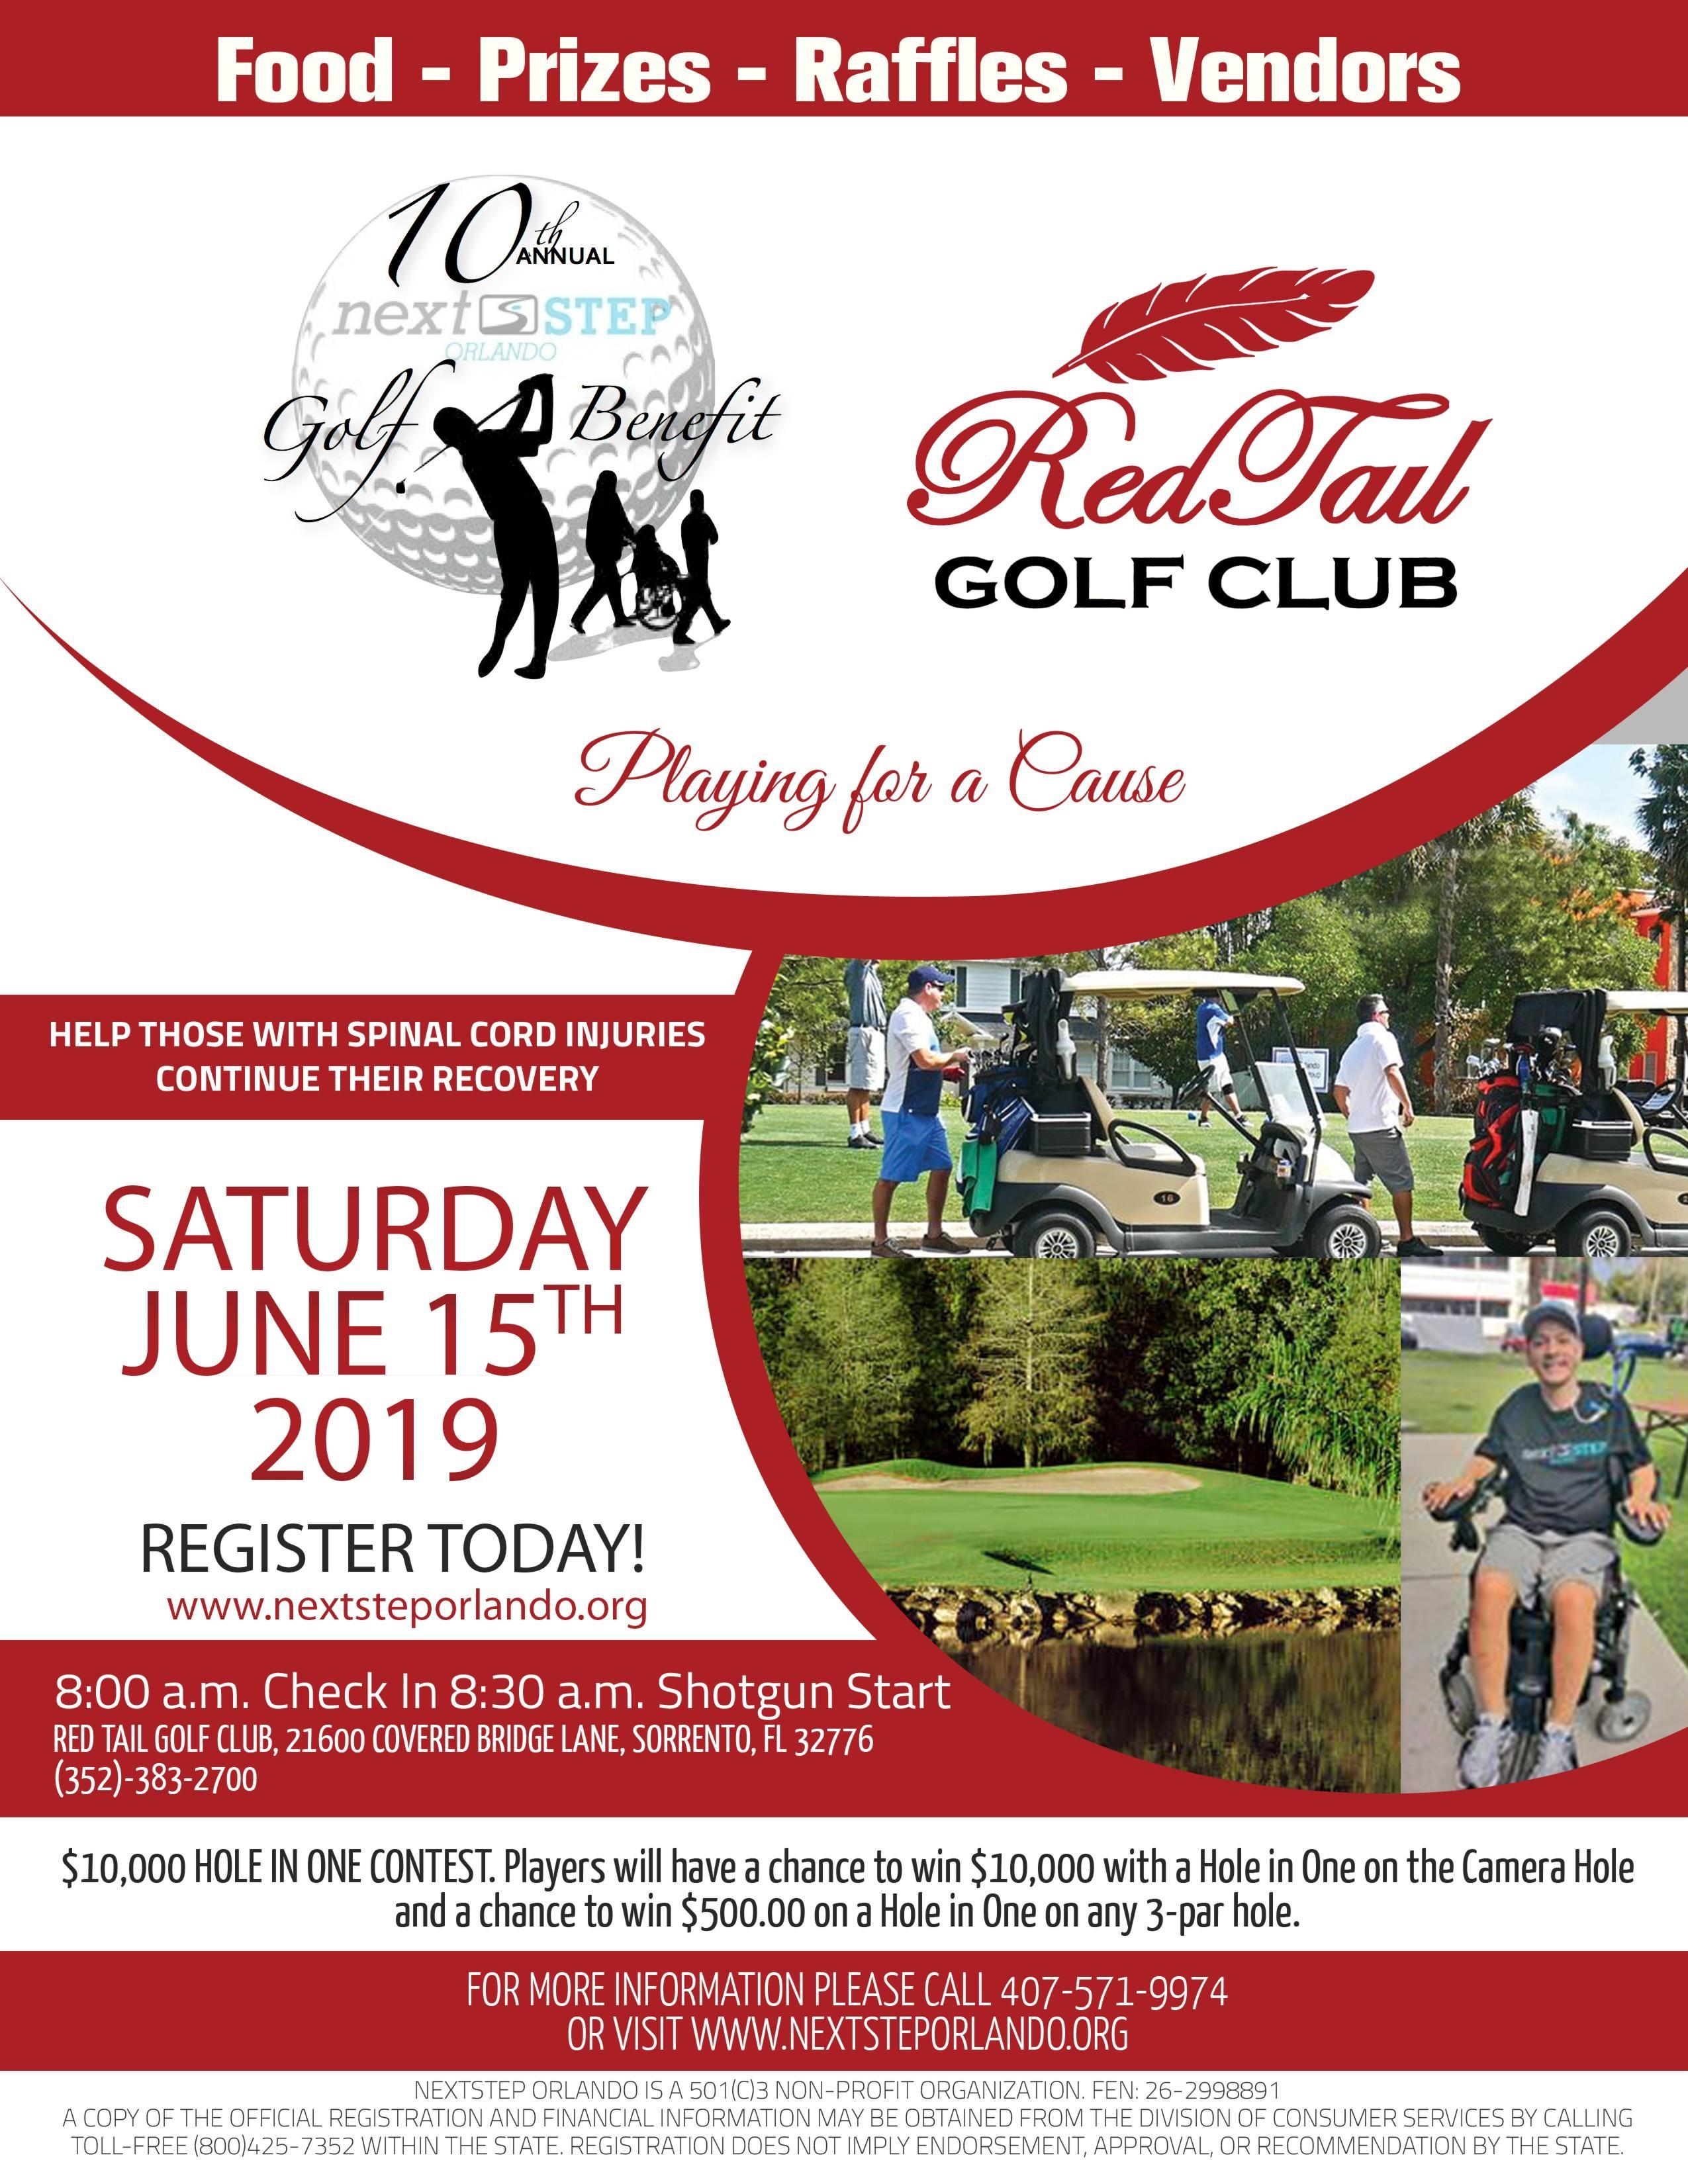 10th Annual Charity Golf Benefit